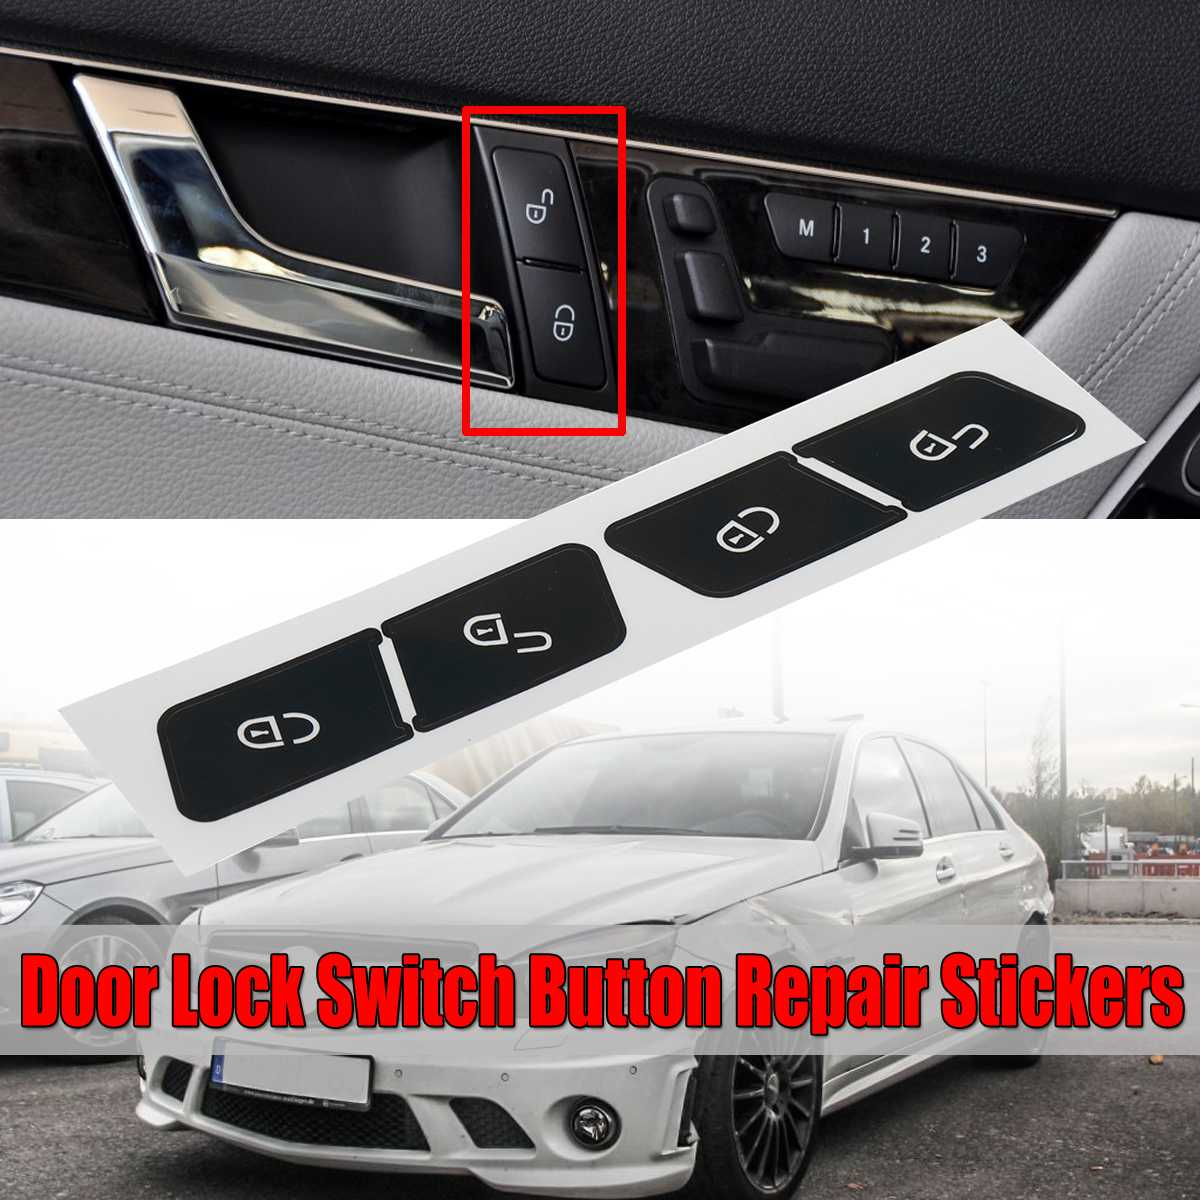 1x Car Inner Door Lock Switch Button Repair Car Stickers Decals For Mercedes For Benz W204 C300 2007-2014 Fix Ugly Button